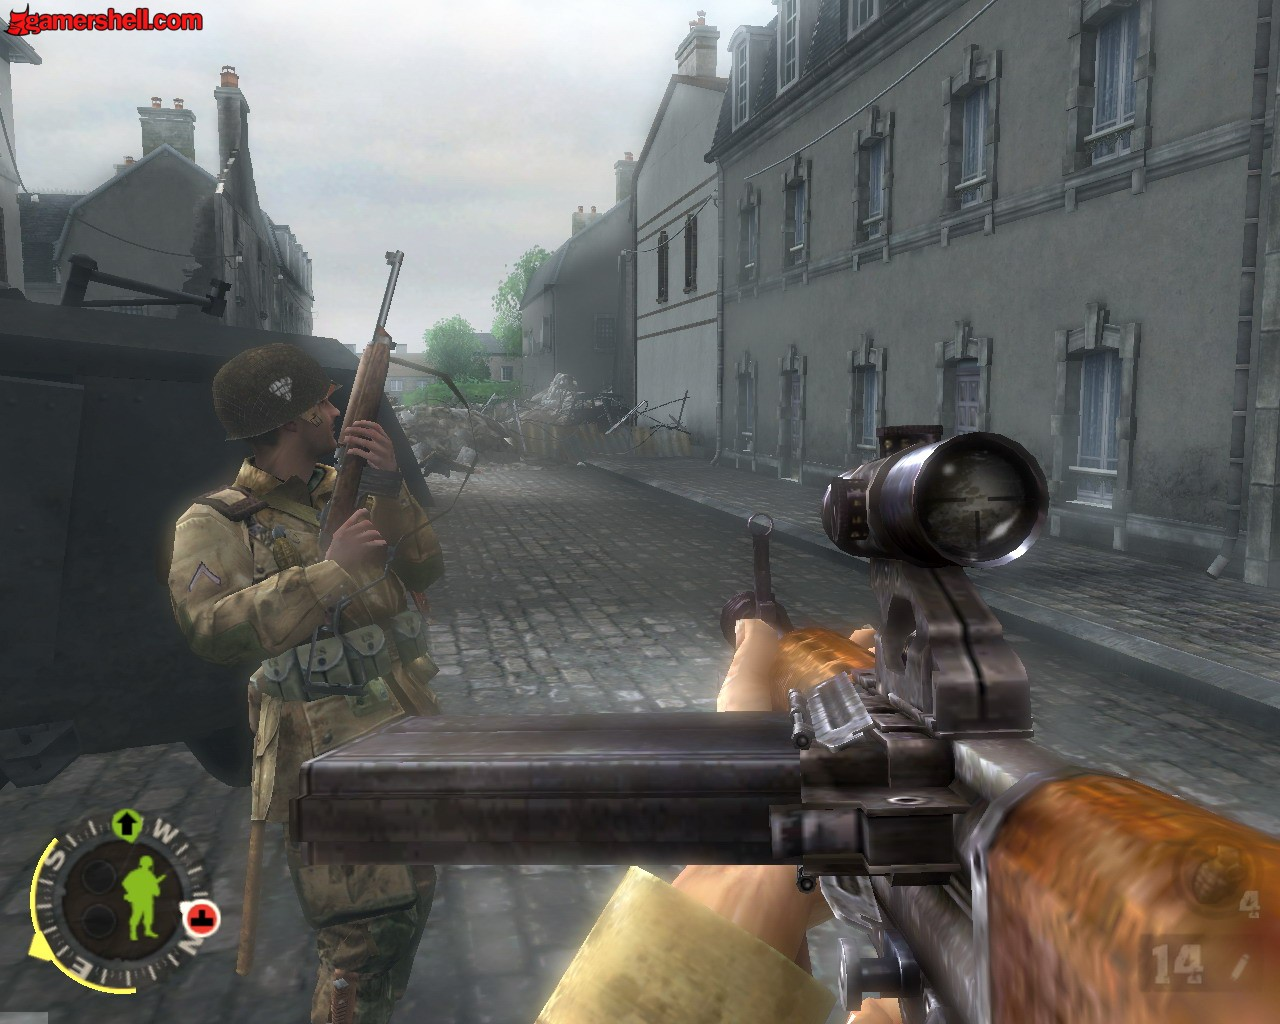 Brothers In Arms 1 Game - Free Online Games